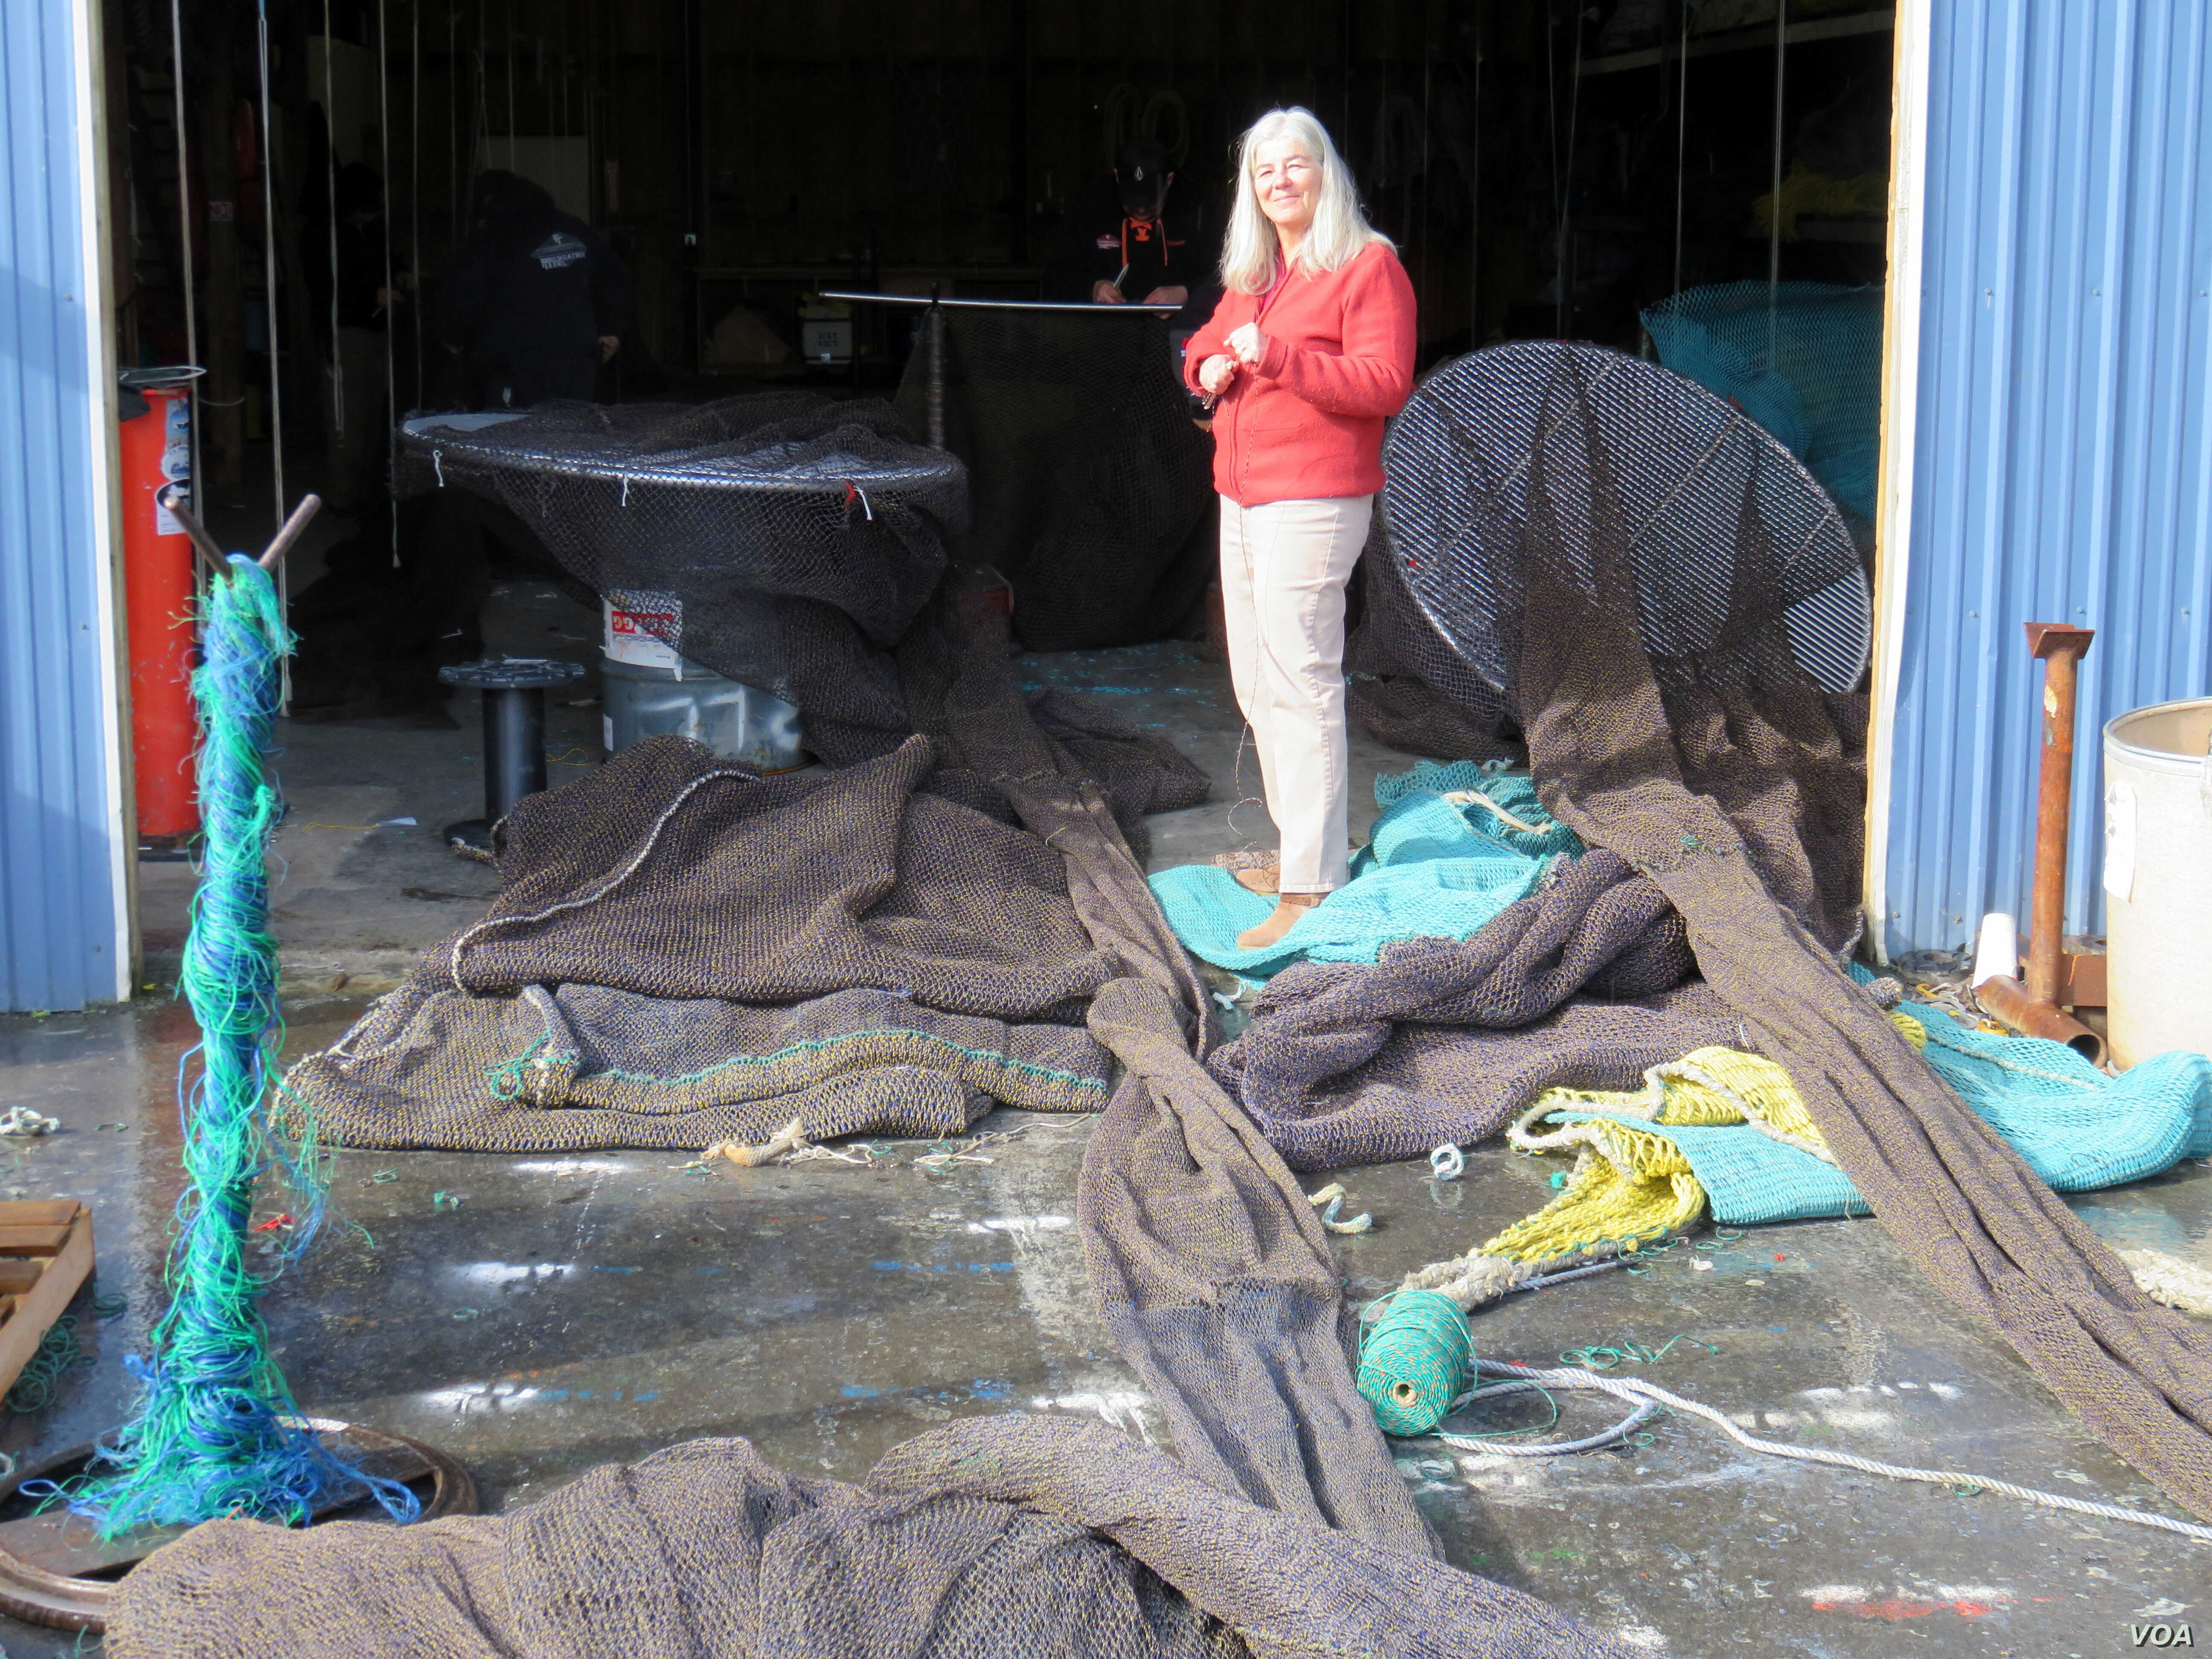 Sara Skamser now runs the commercial fishing net shop Foulweather Trawl at the Port of Newport, Oregon